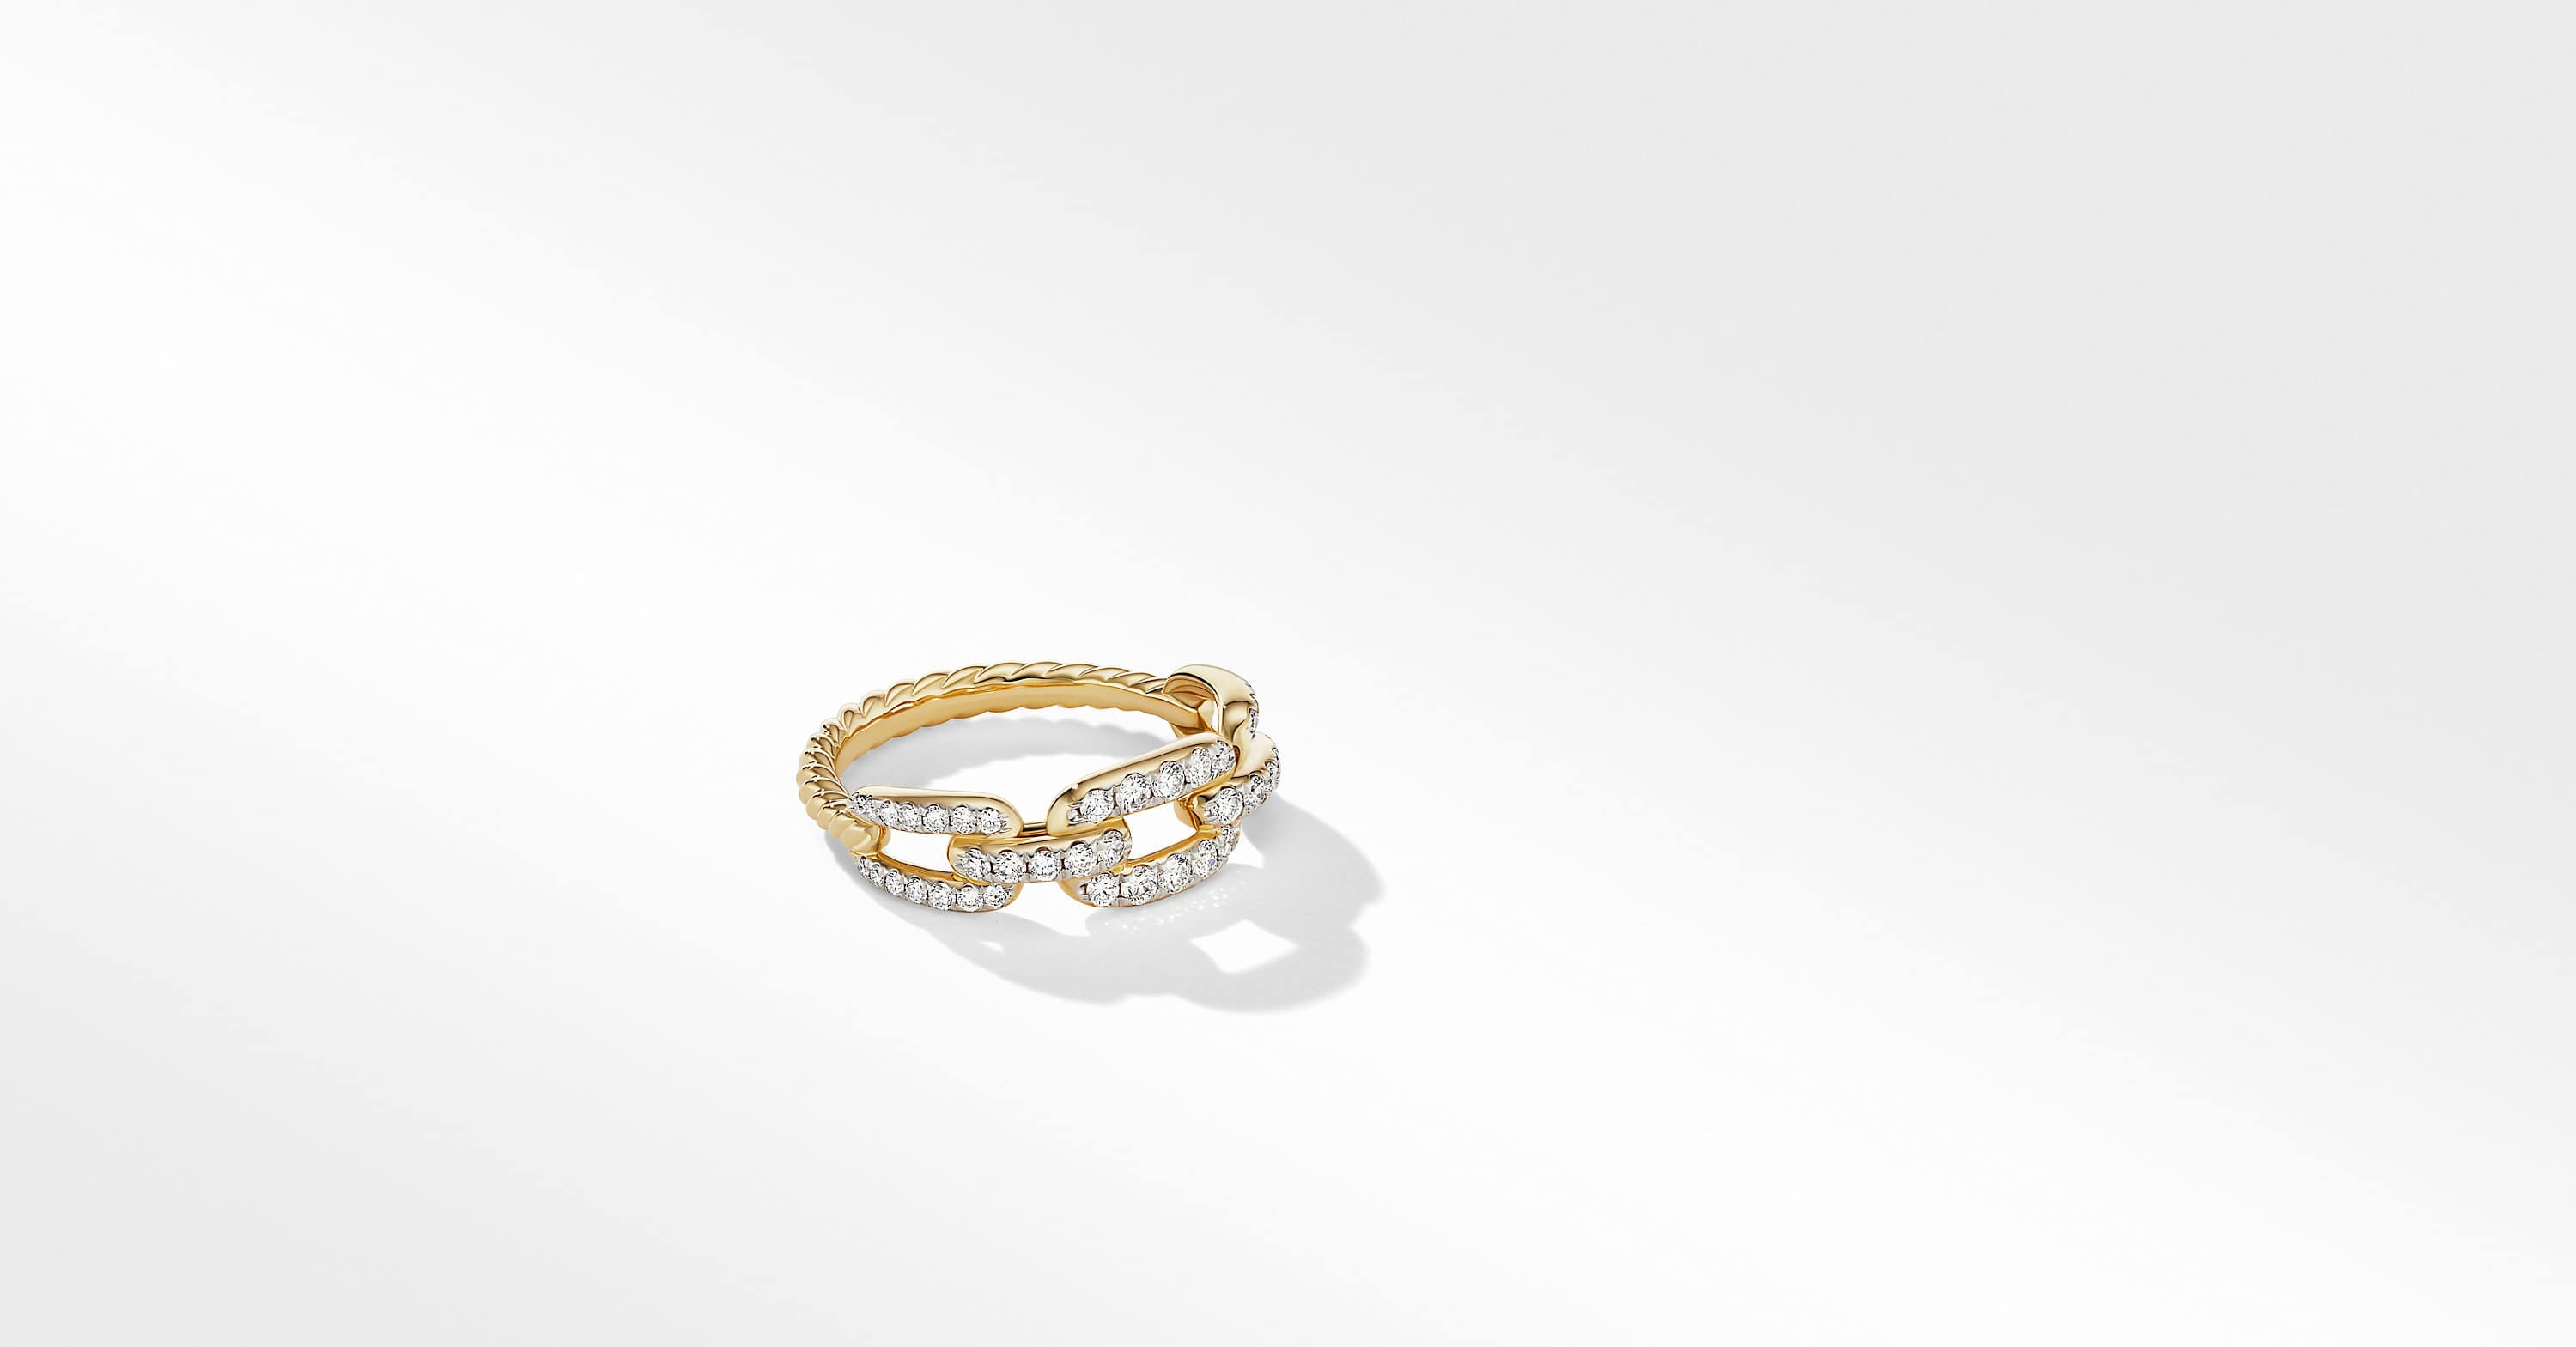 Stax Chain Link Ring in 18K Yellow Gold with Diamonds, 7mm